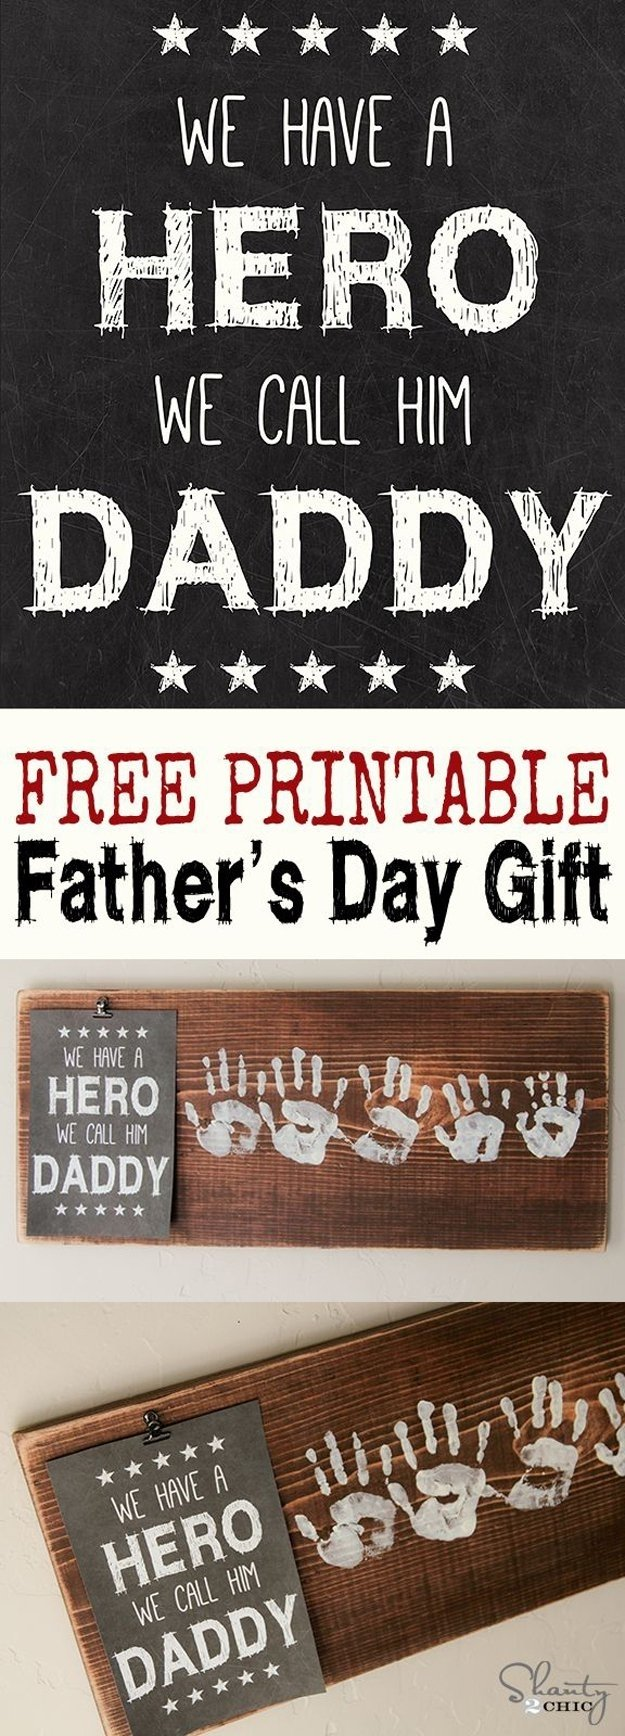 25 cool diy father's day gift ideas | diy projects and crafts